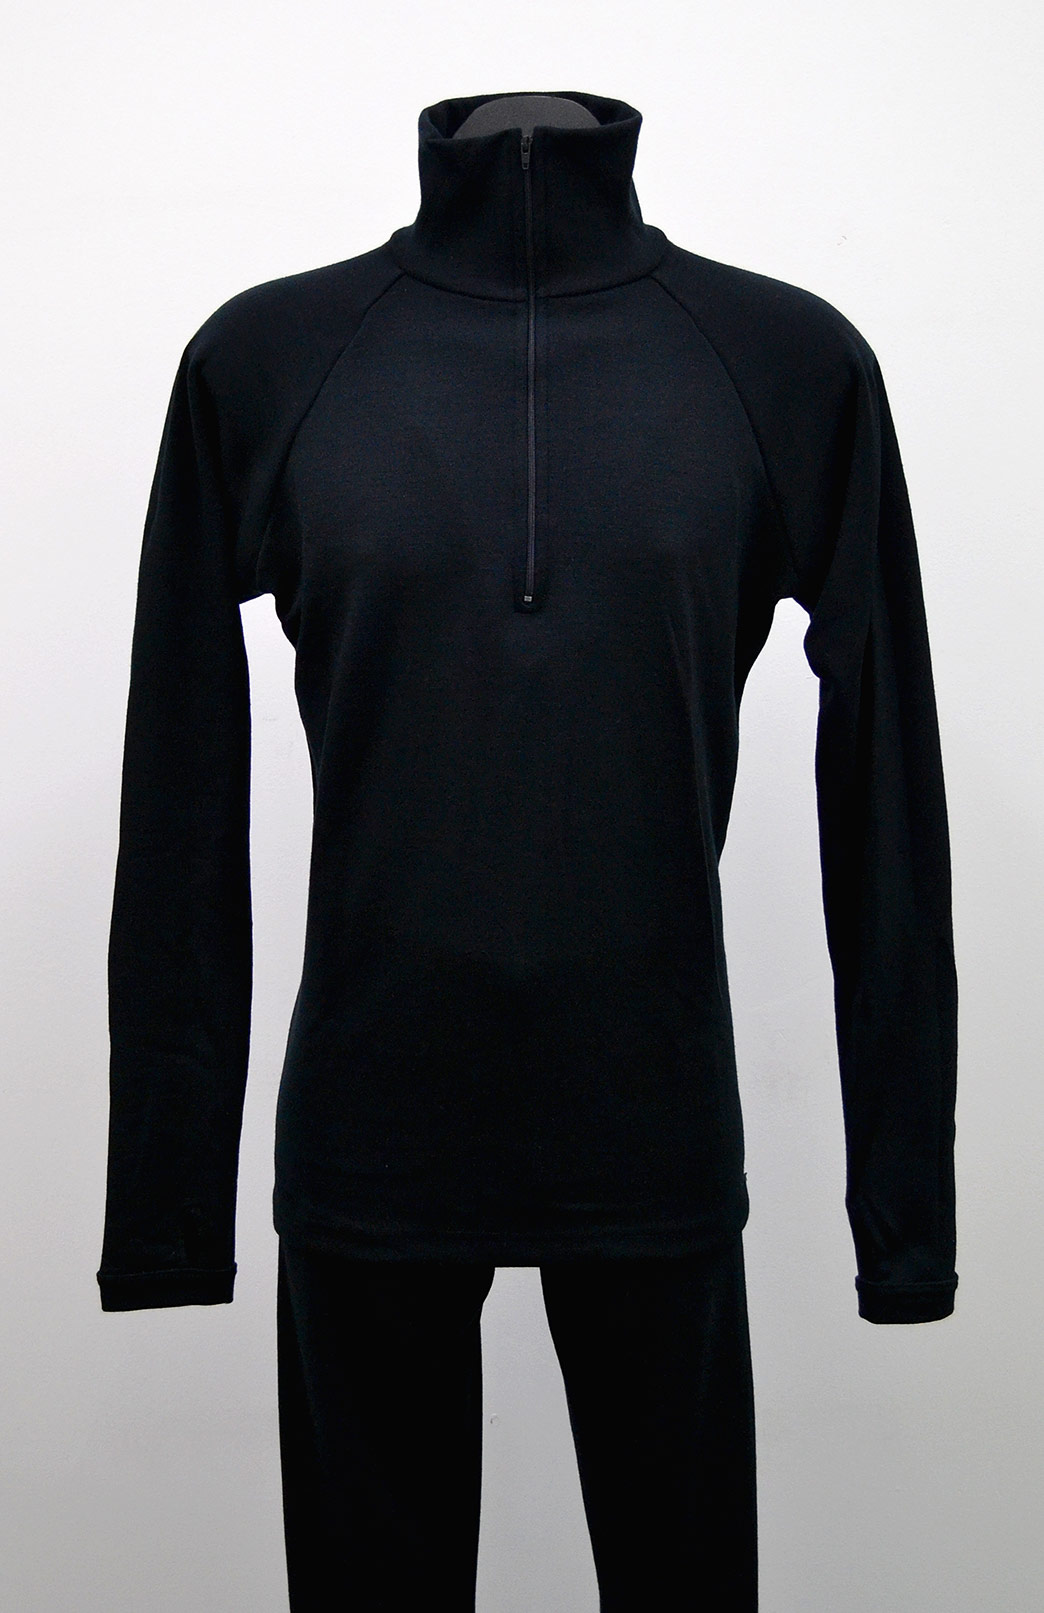 Zip Neck Top - Heavyweight (~360g) - Men's Pure Merino Wool Heavyweight Black Zip Neck Pull-Over Top with Thumb Holes for Bush Walking and Outdoor Sports - Smitten Merino Tasmania Australia